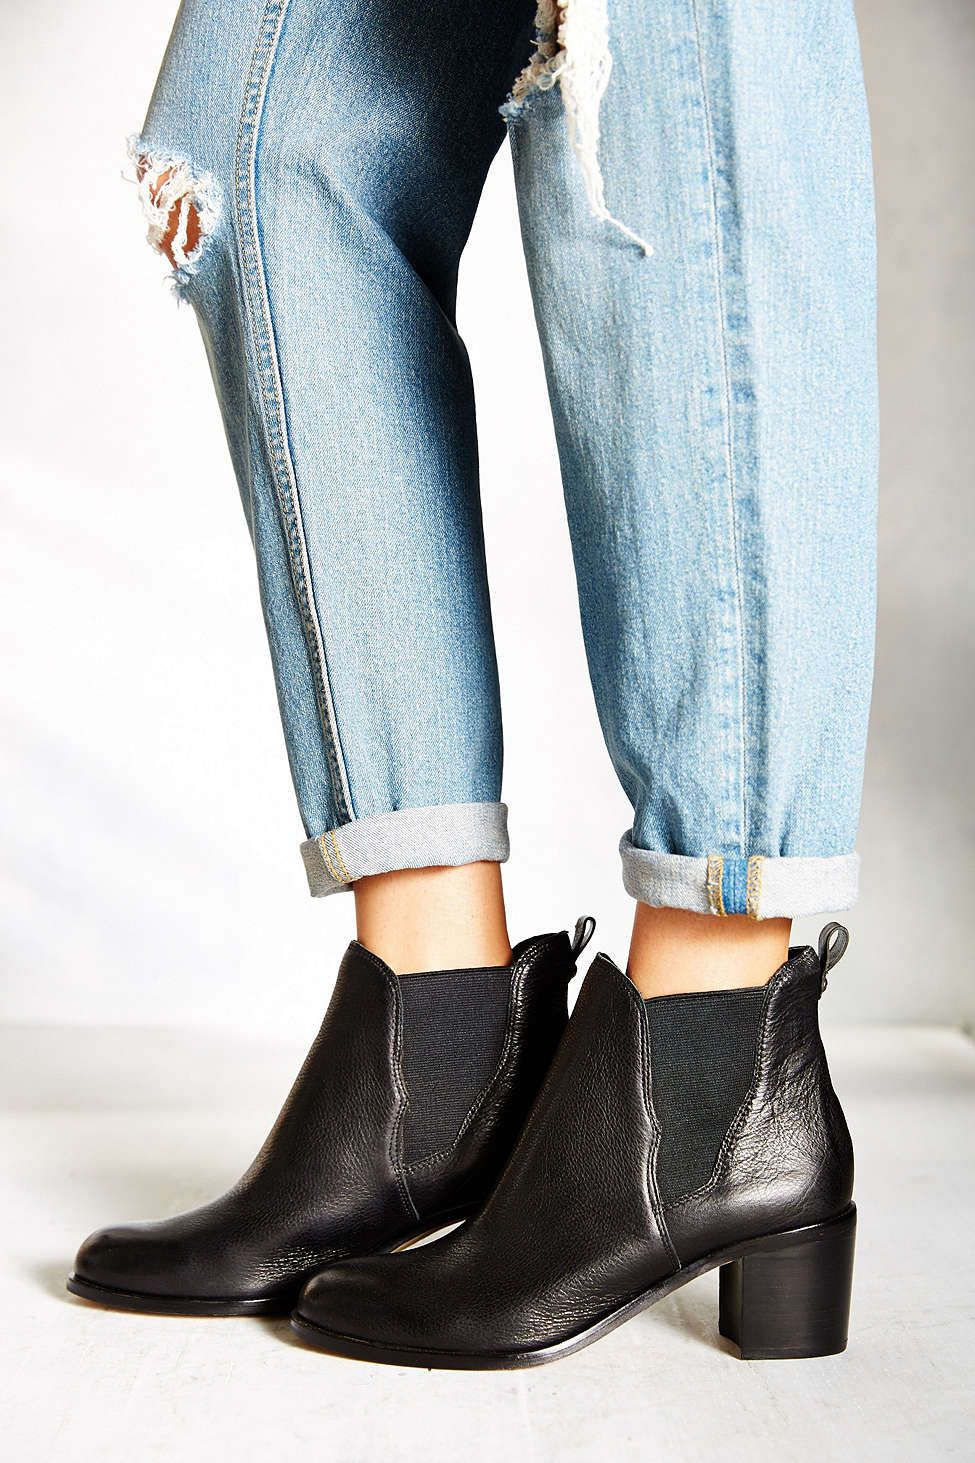 ac2559d89 Sam Edelman Justin Hold Gore Chelsea Boot - Urban Outfitters ...